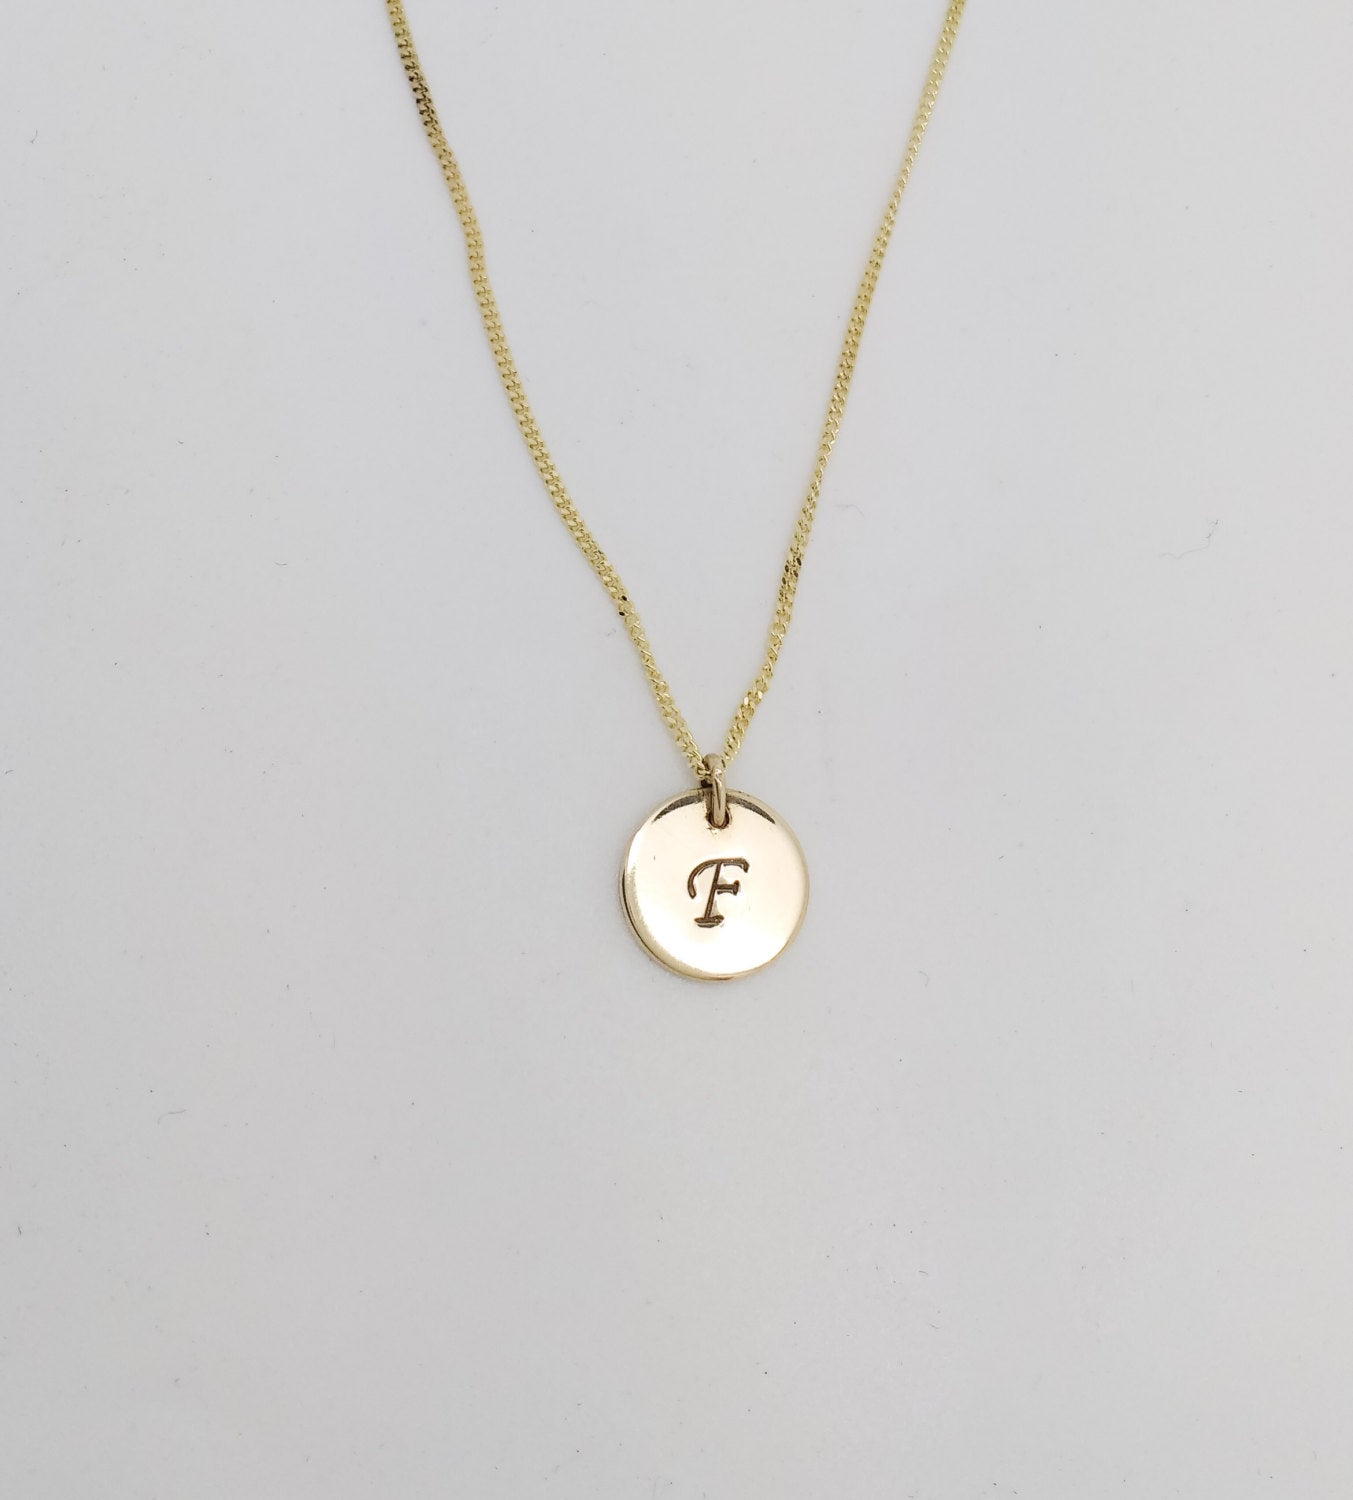 9ct Gold Initial Necklace